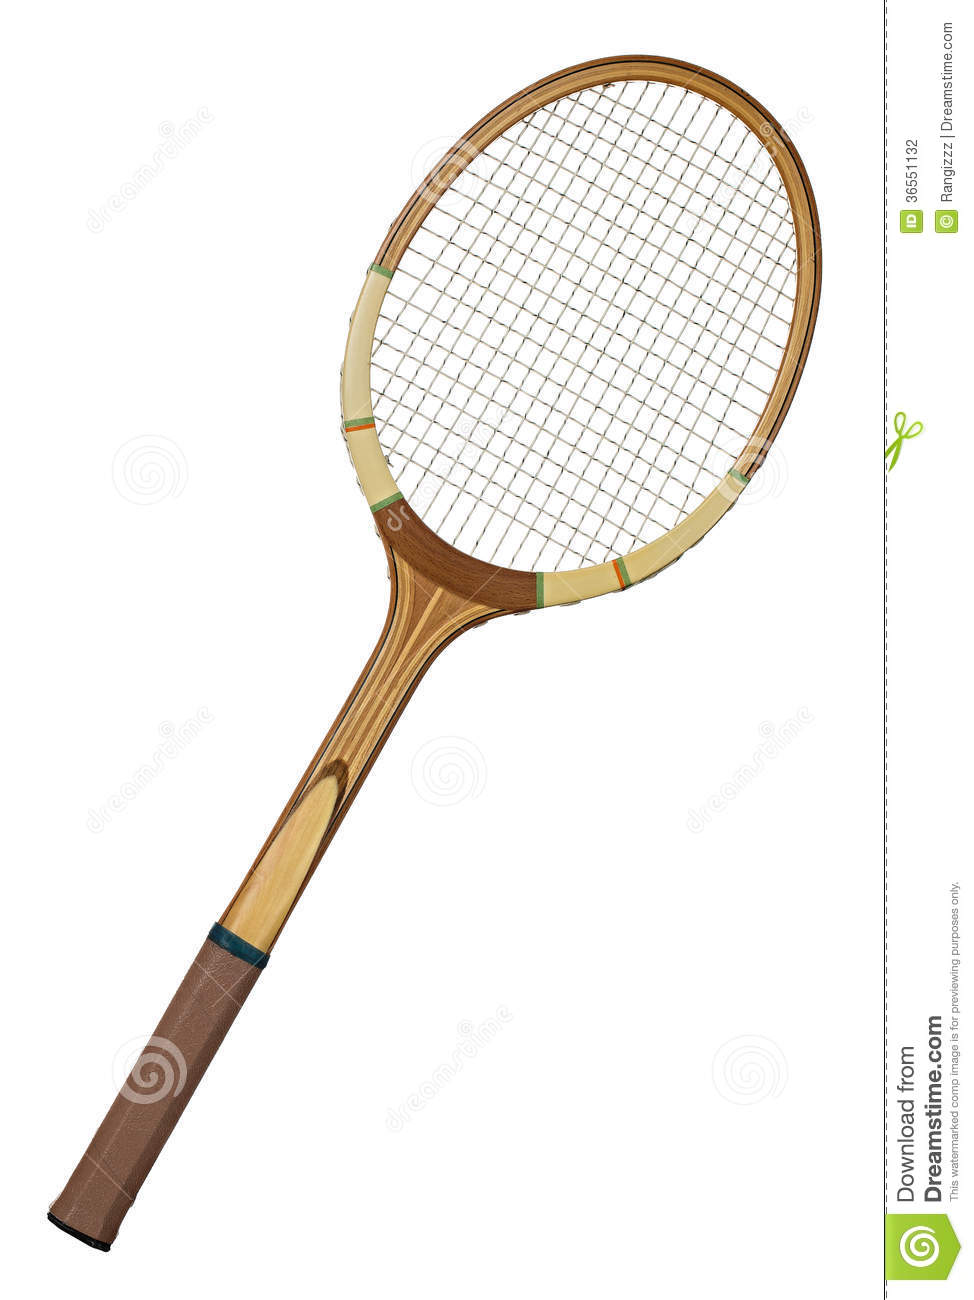 vintage tennis racket stock photo image of gear  oval tennis racquet clipart tennis racket clip art b&w